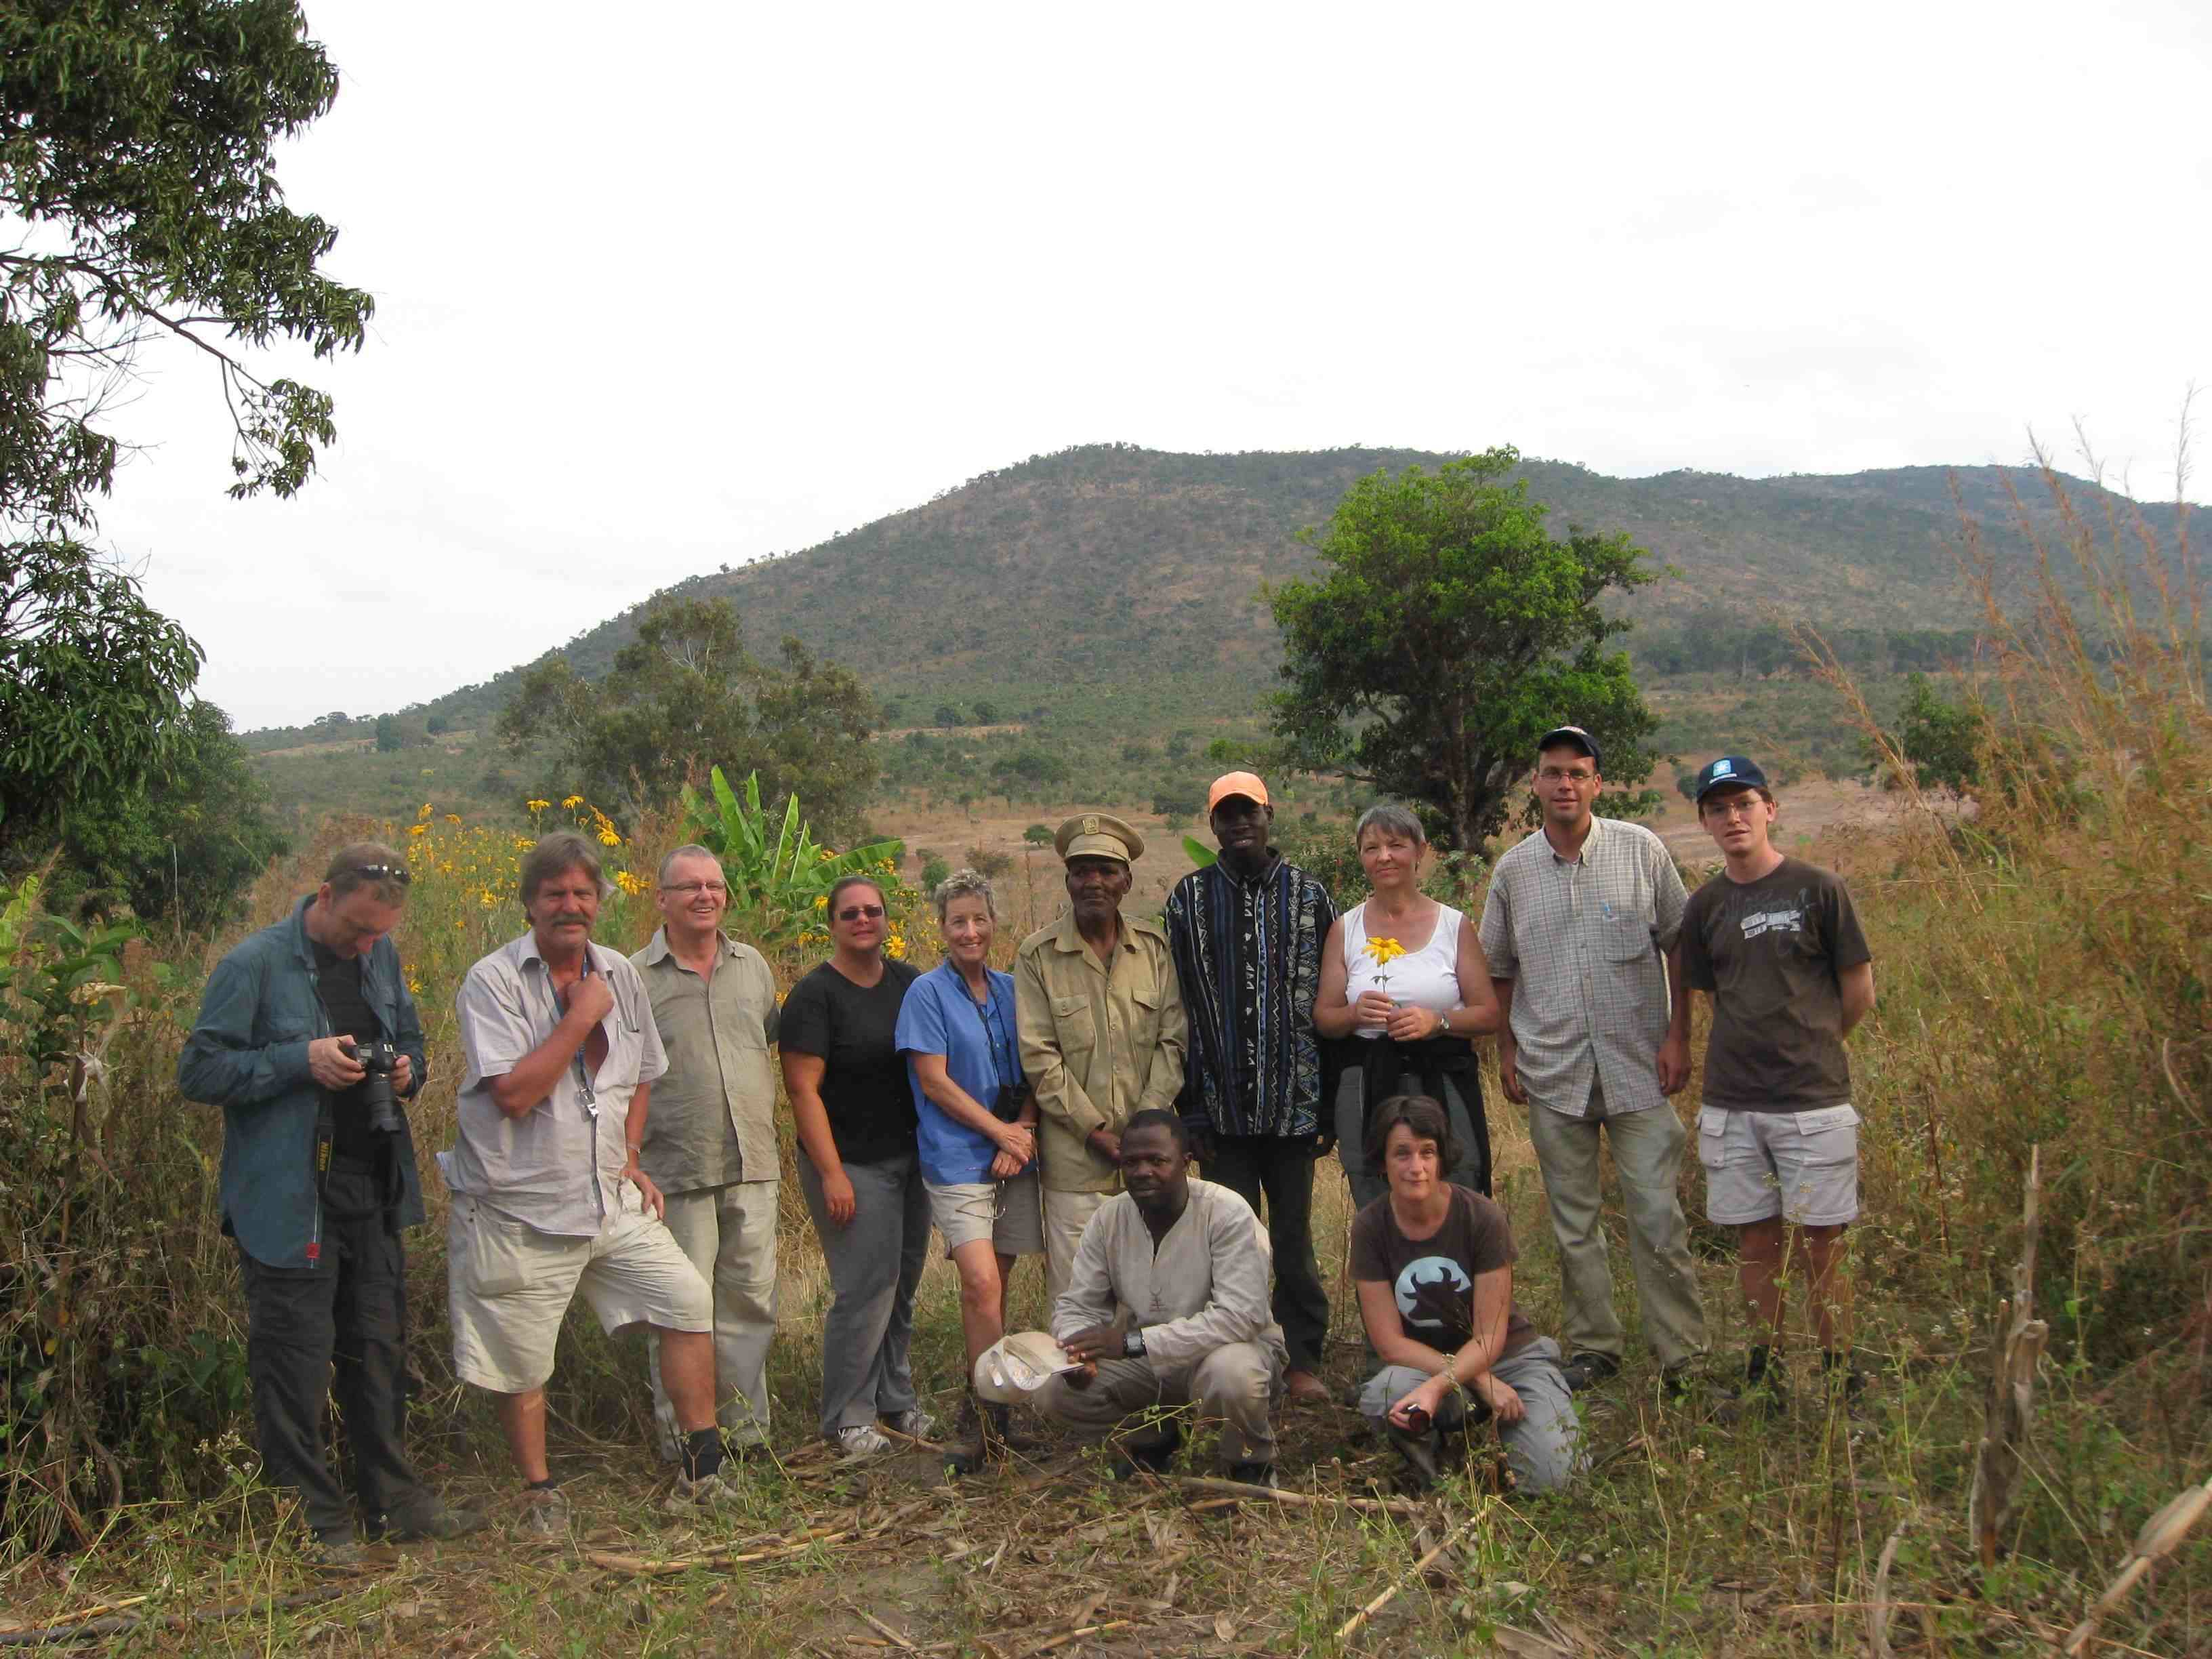 Angola Field Group members meet the soba of Mount Sumi on their May field trip to Huambo.